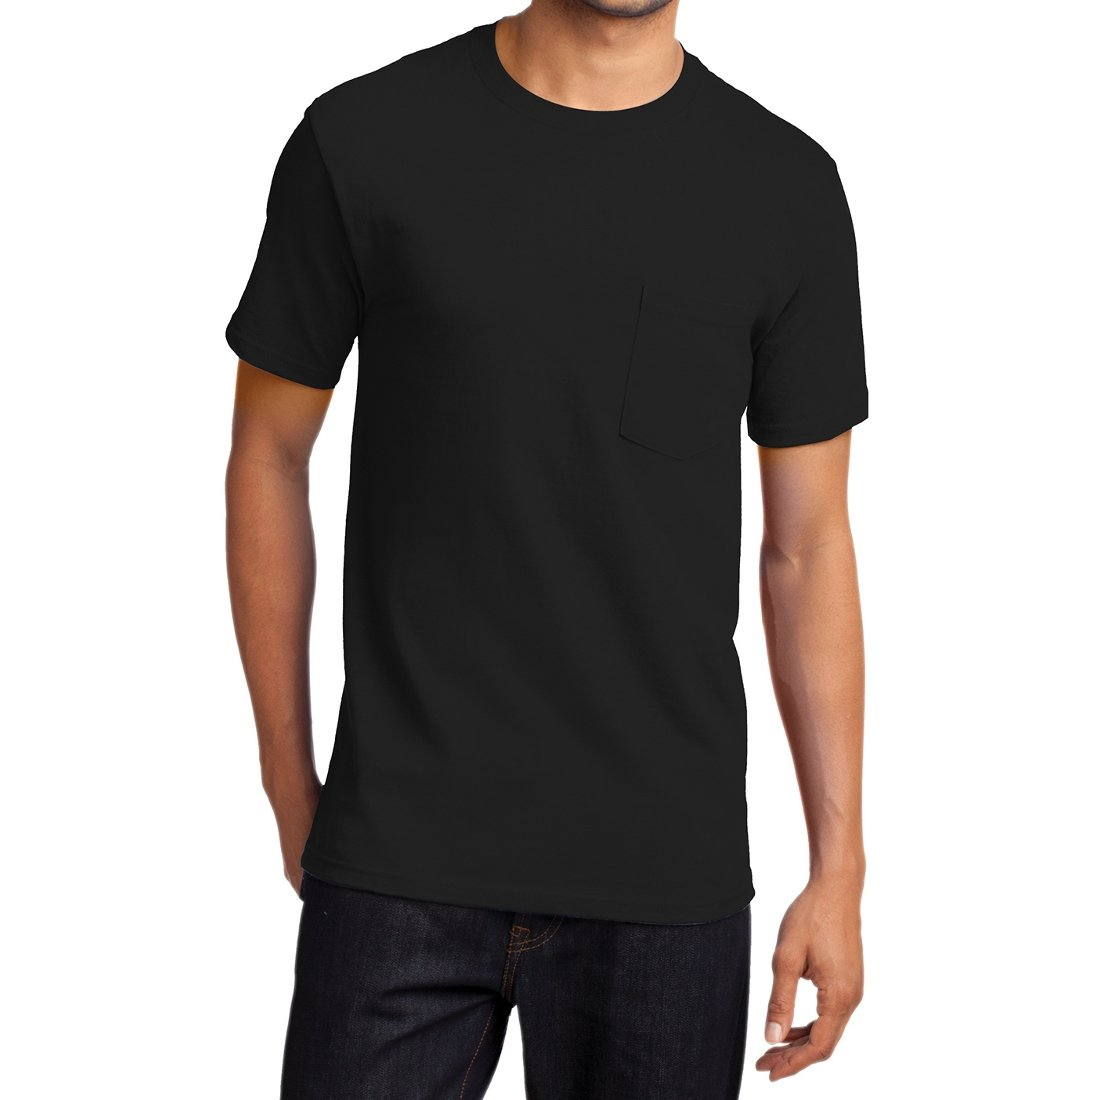 Men's Essential T Shirt with Pocket Jet Black